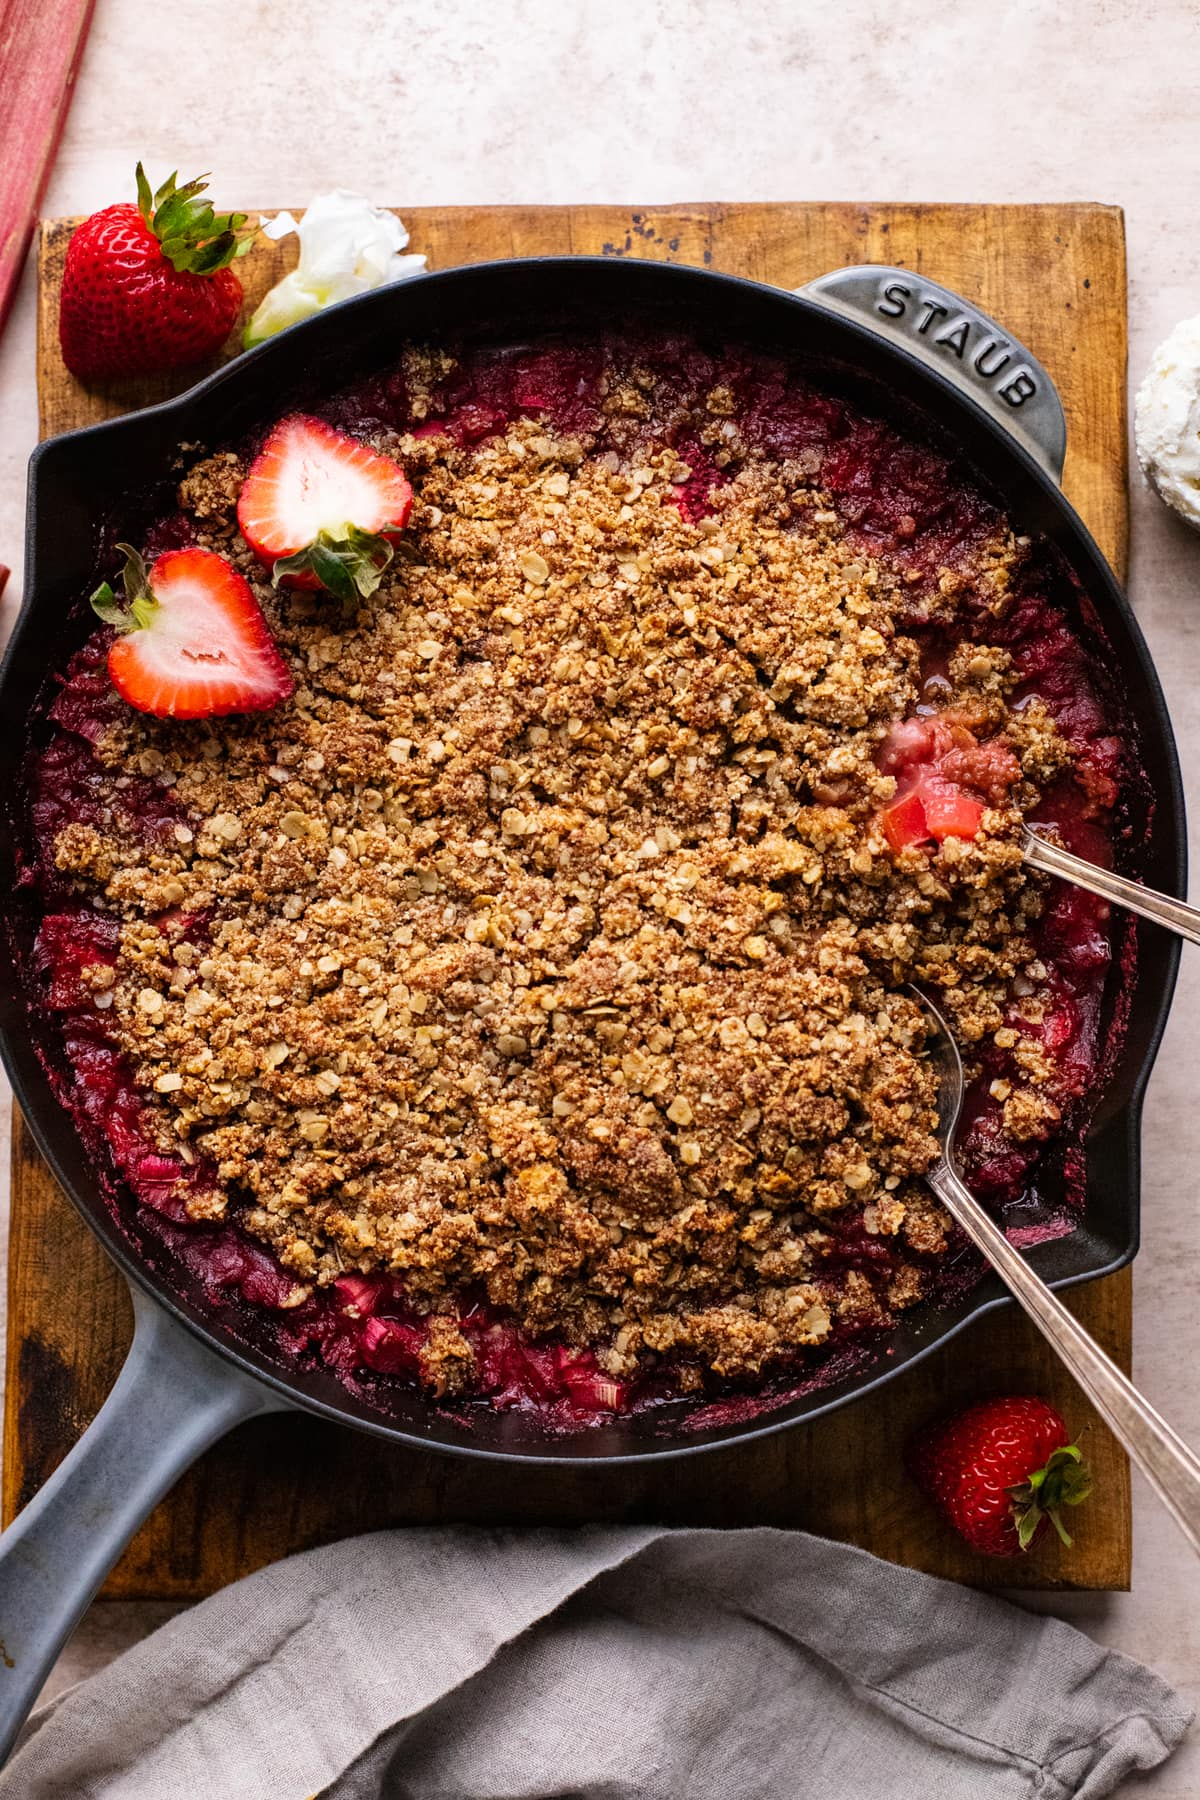 skillet pan with gluten free strawberry rhubarb crisp in it on brown wooden board.